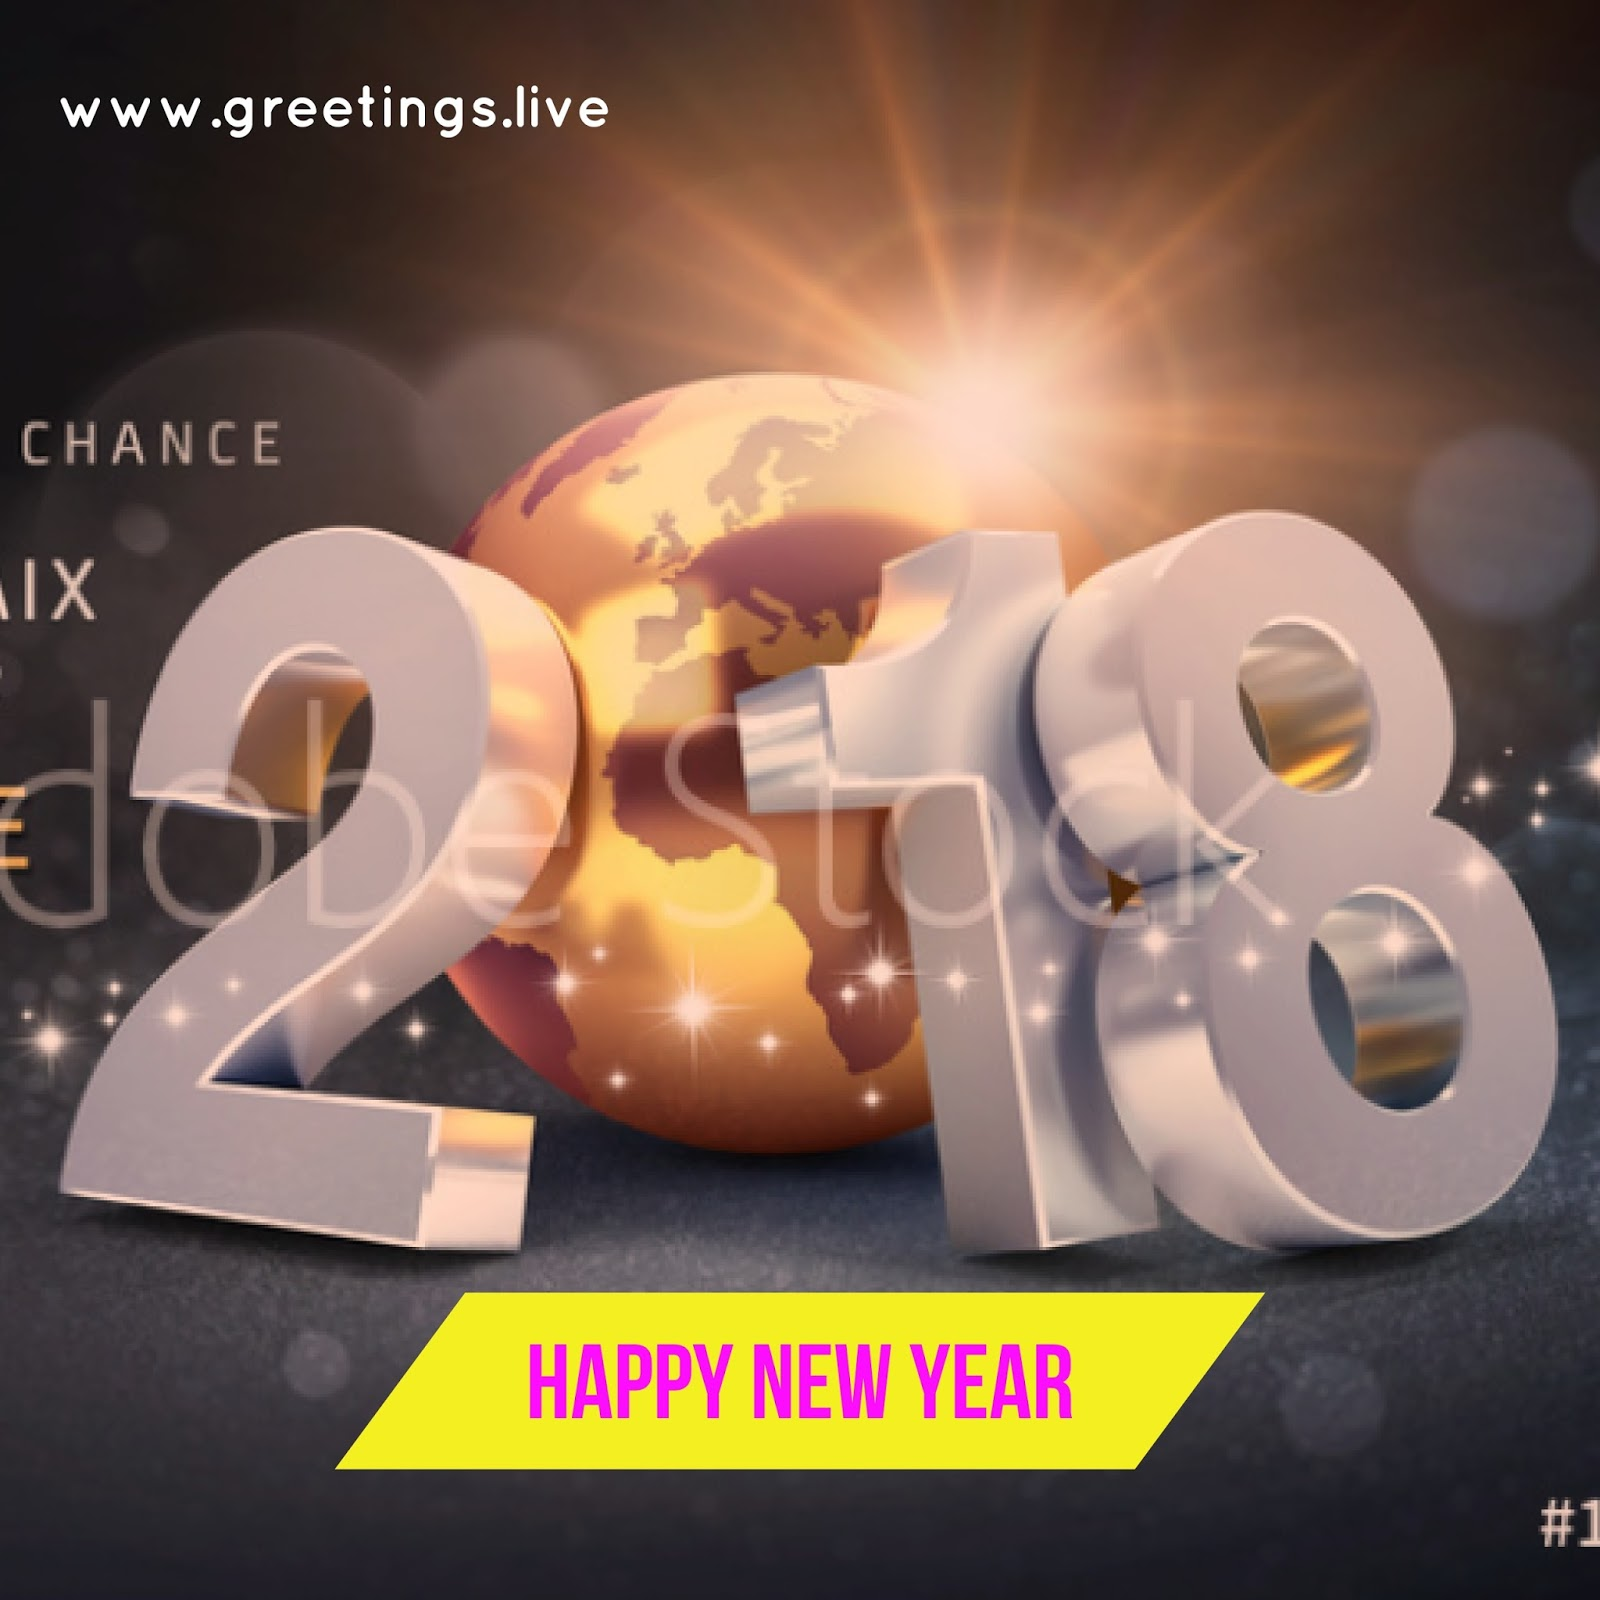 Telugu picture messages 2018 new year images loading here 2018 new year images loading here m4hsunfo